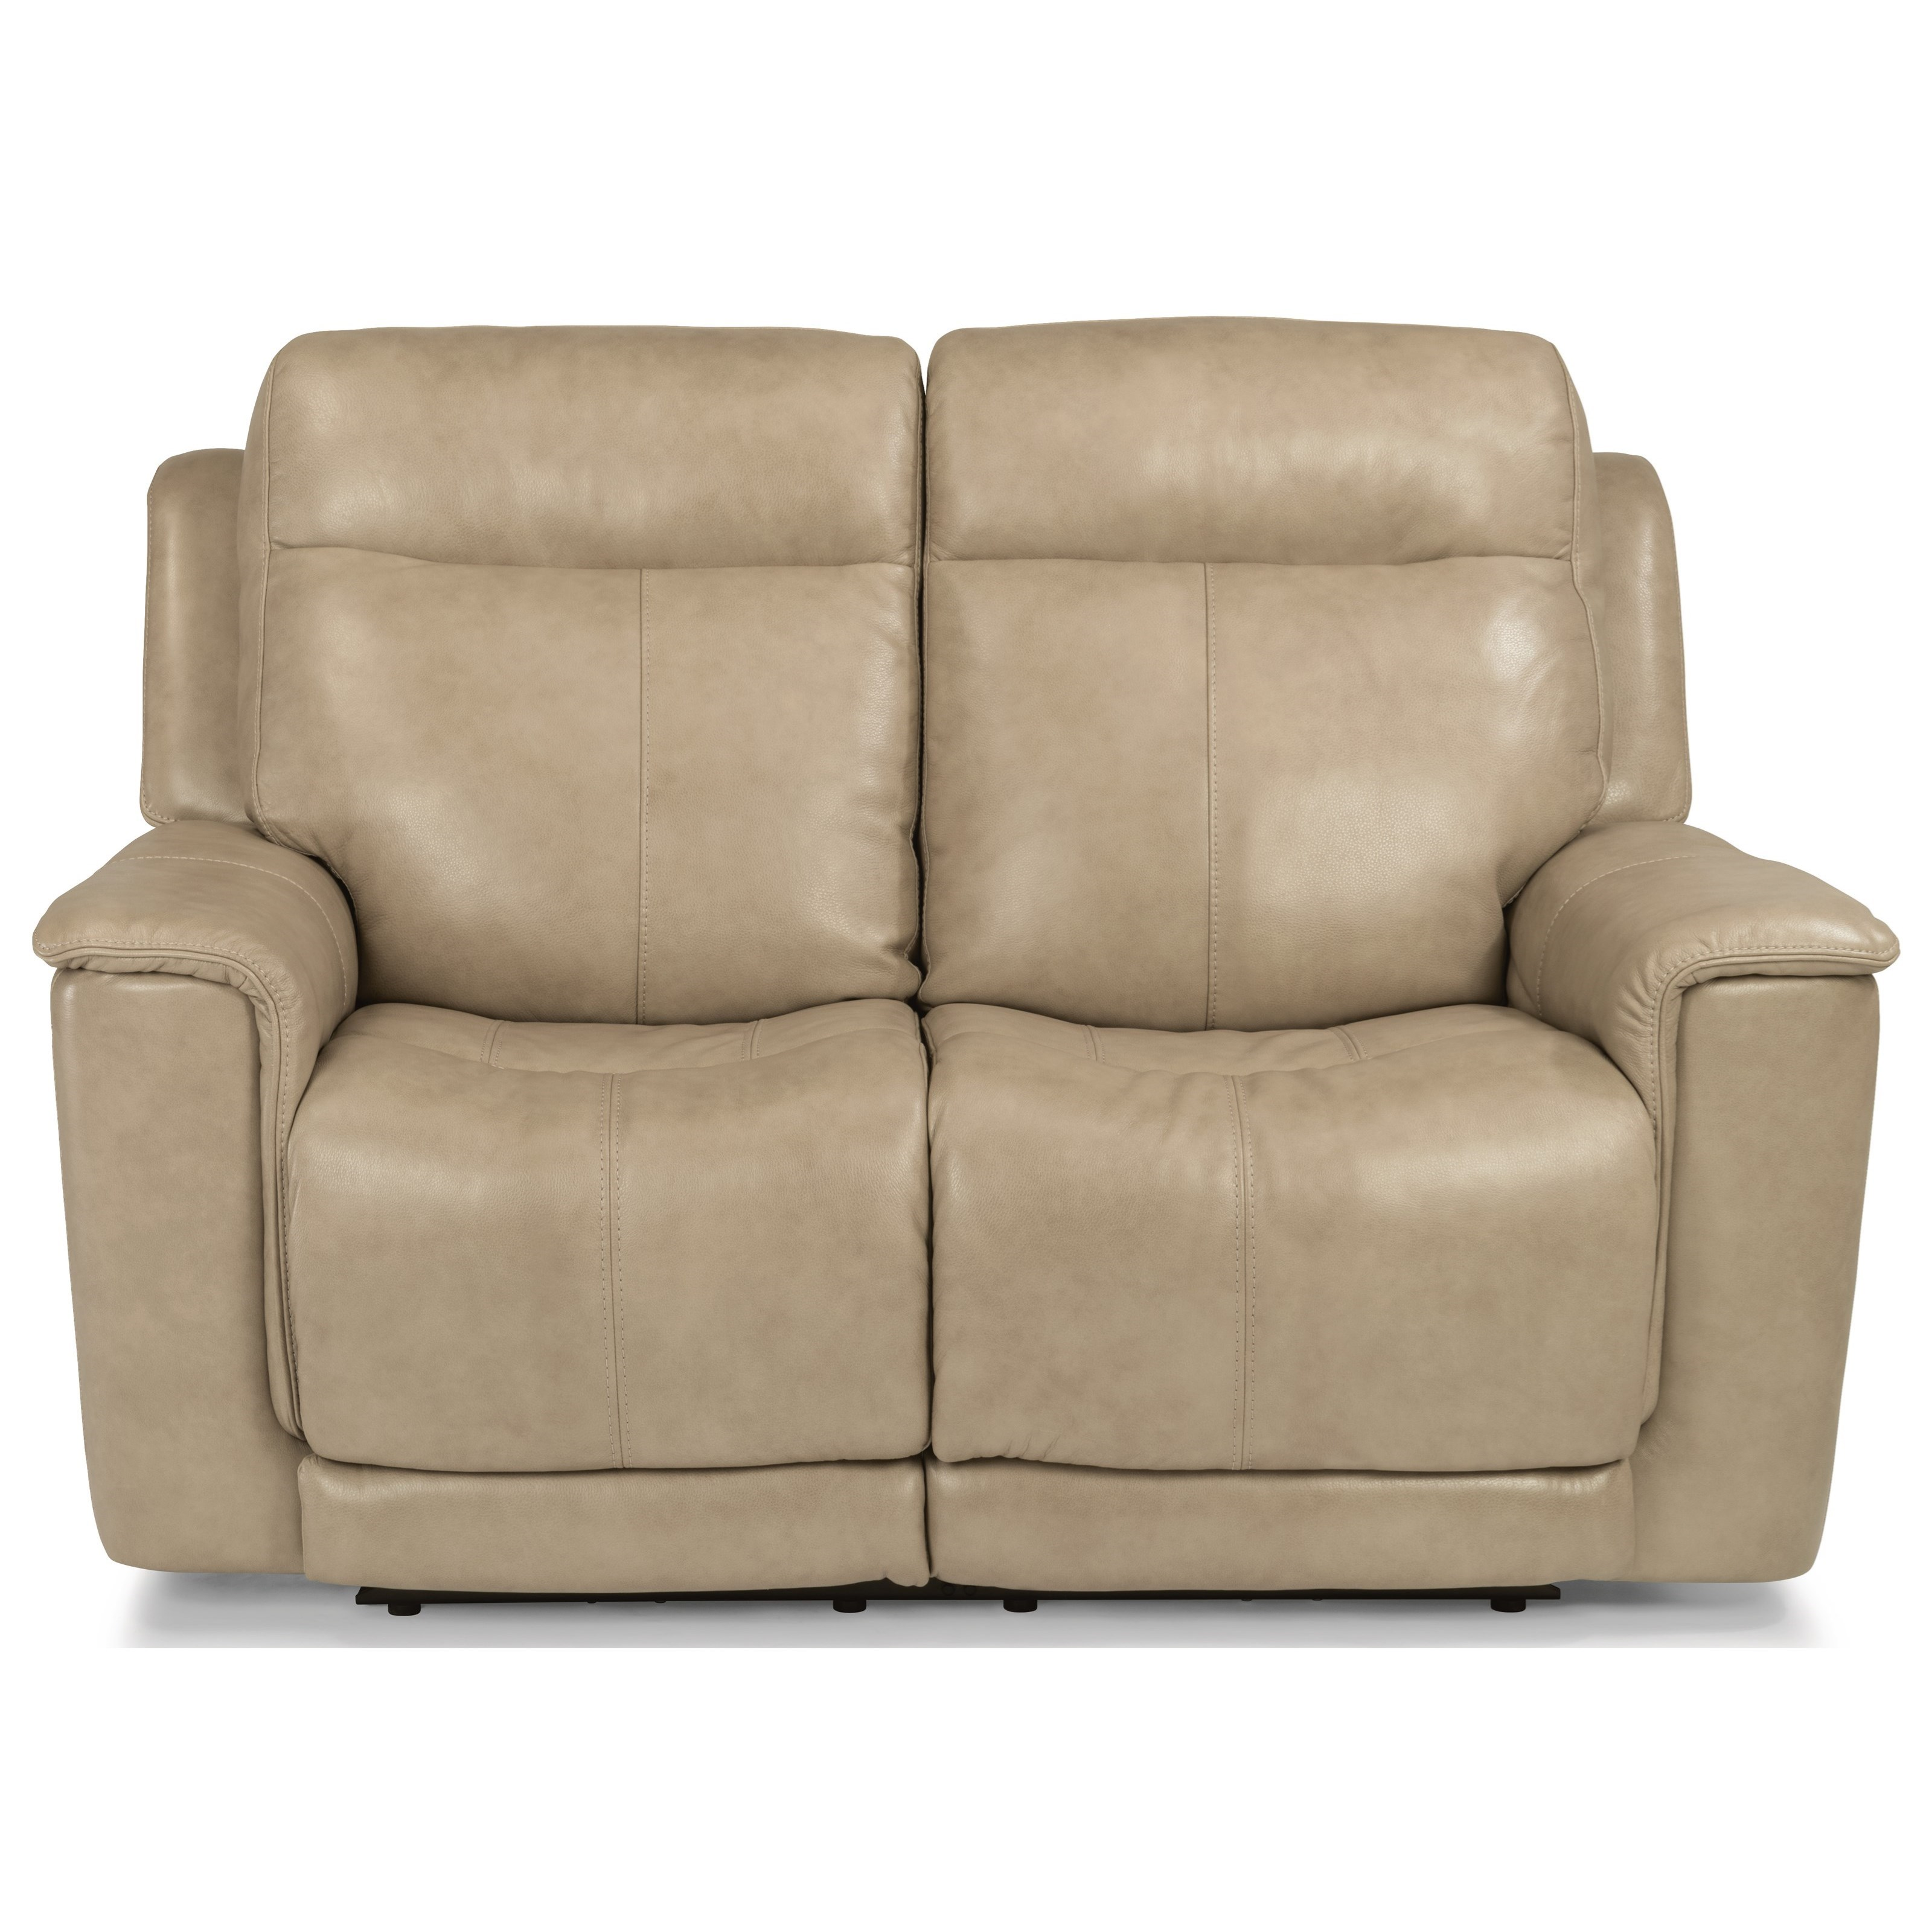 Latitudes - Miller Power Reclining Love Seat by Flexsteel at Darvin Furniture